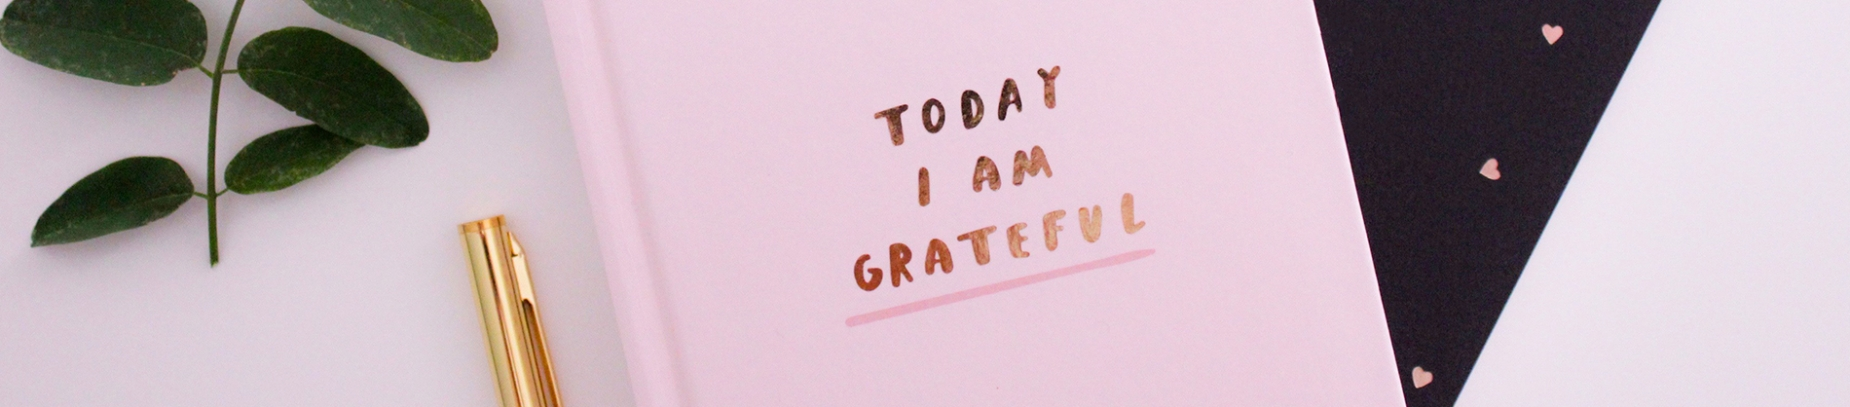 A pink notebook with the words Today I am Grateful in gold lettering on it